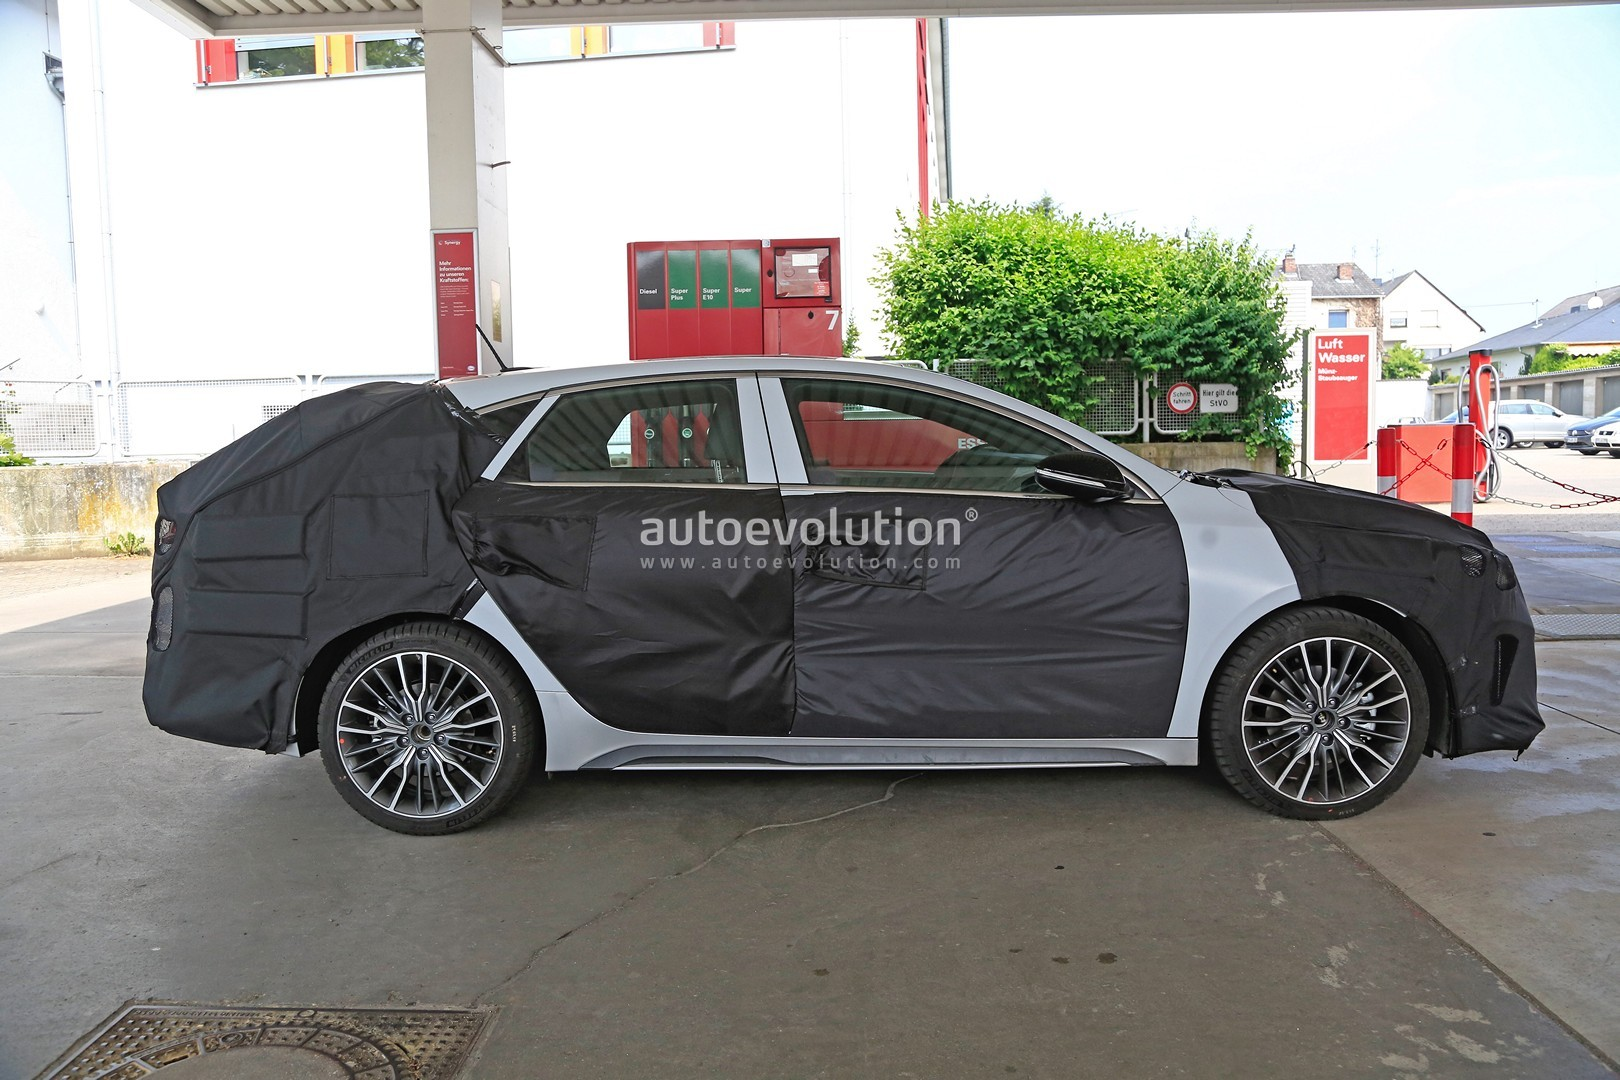 2019 kia ceed fastback spotted for the first time could be the shooting brake autoevolution. Black Bedroom Furniture Sets. Home Design Ideas